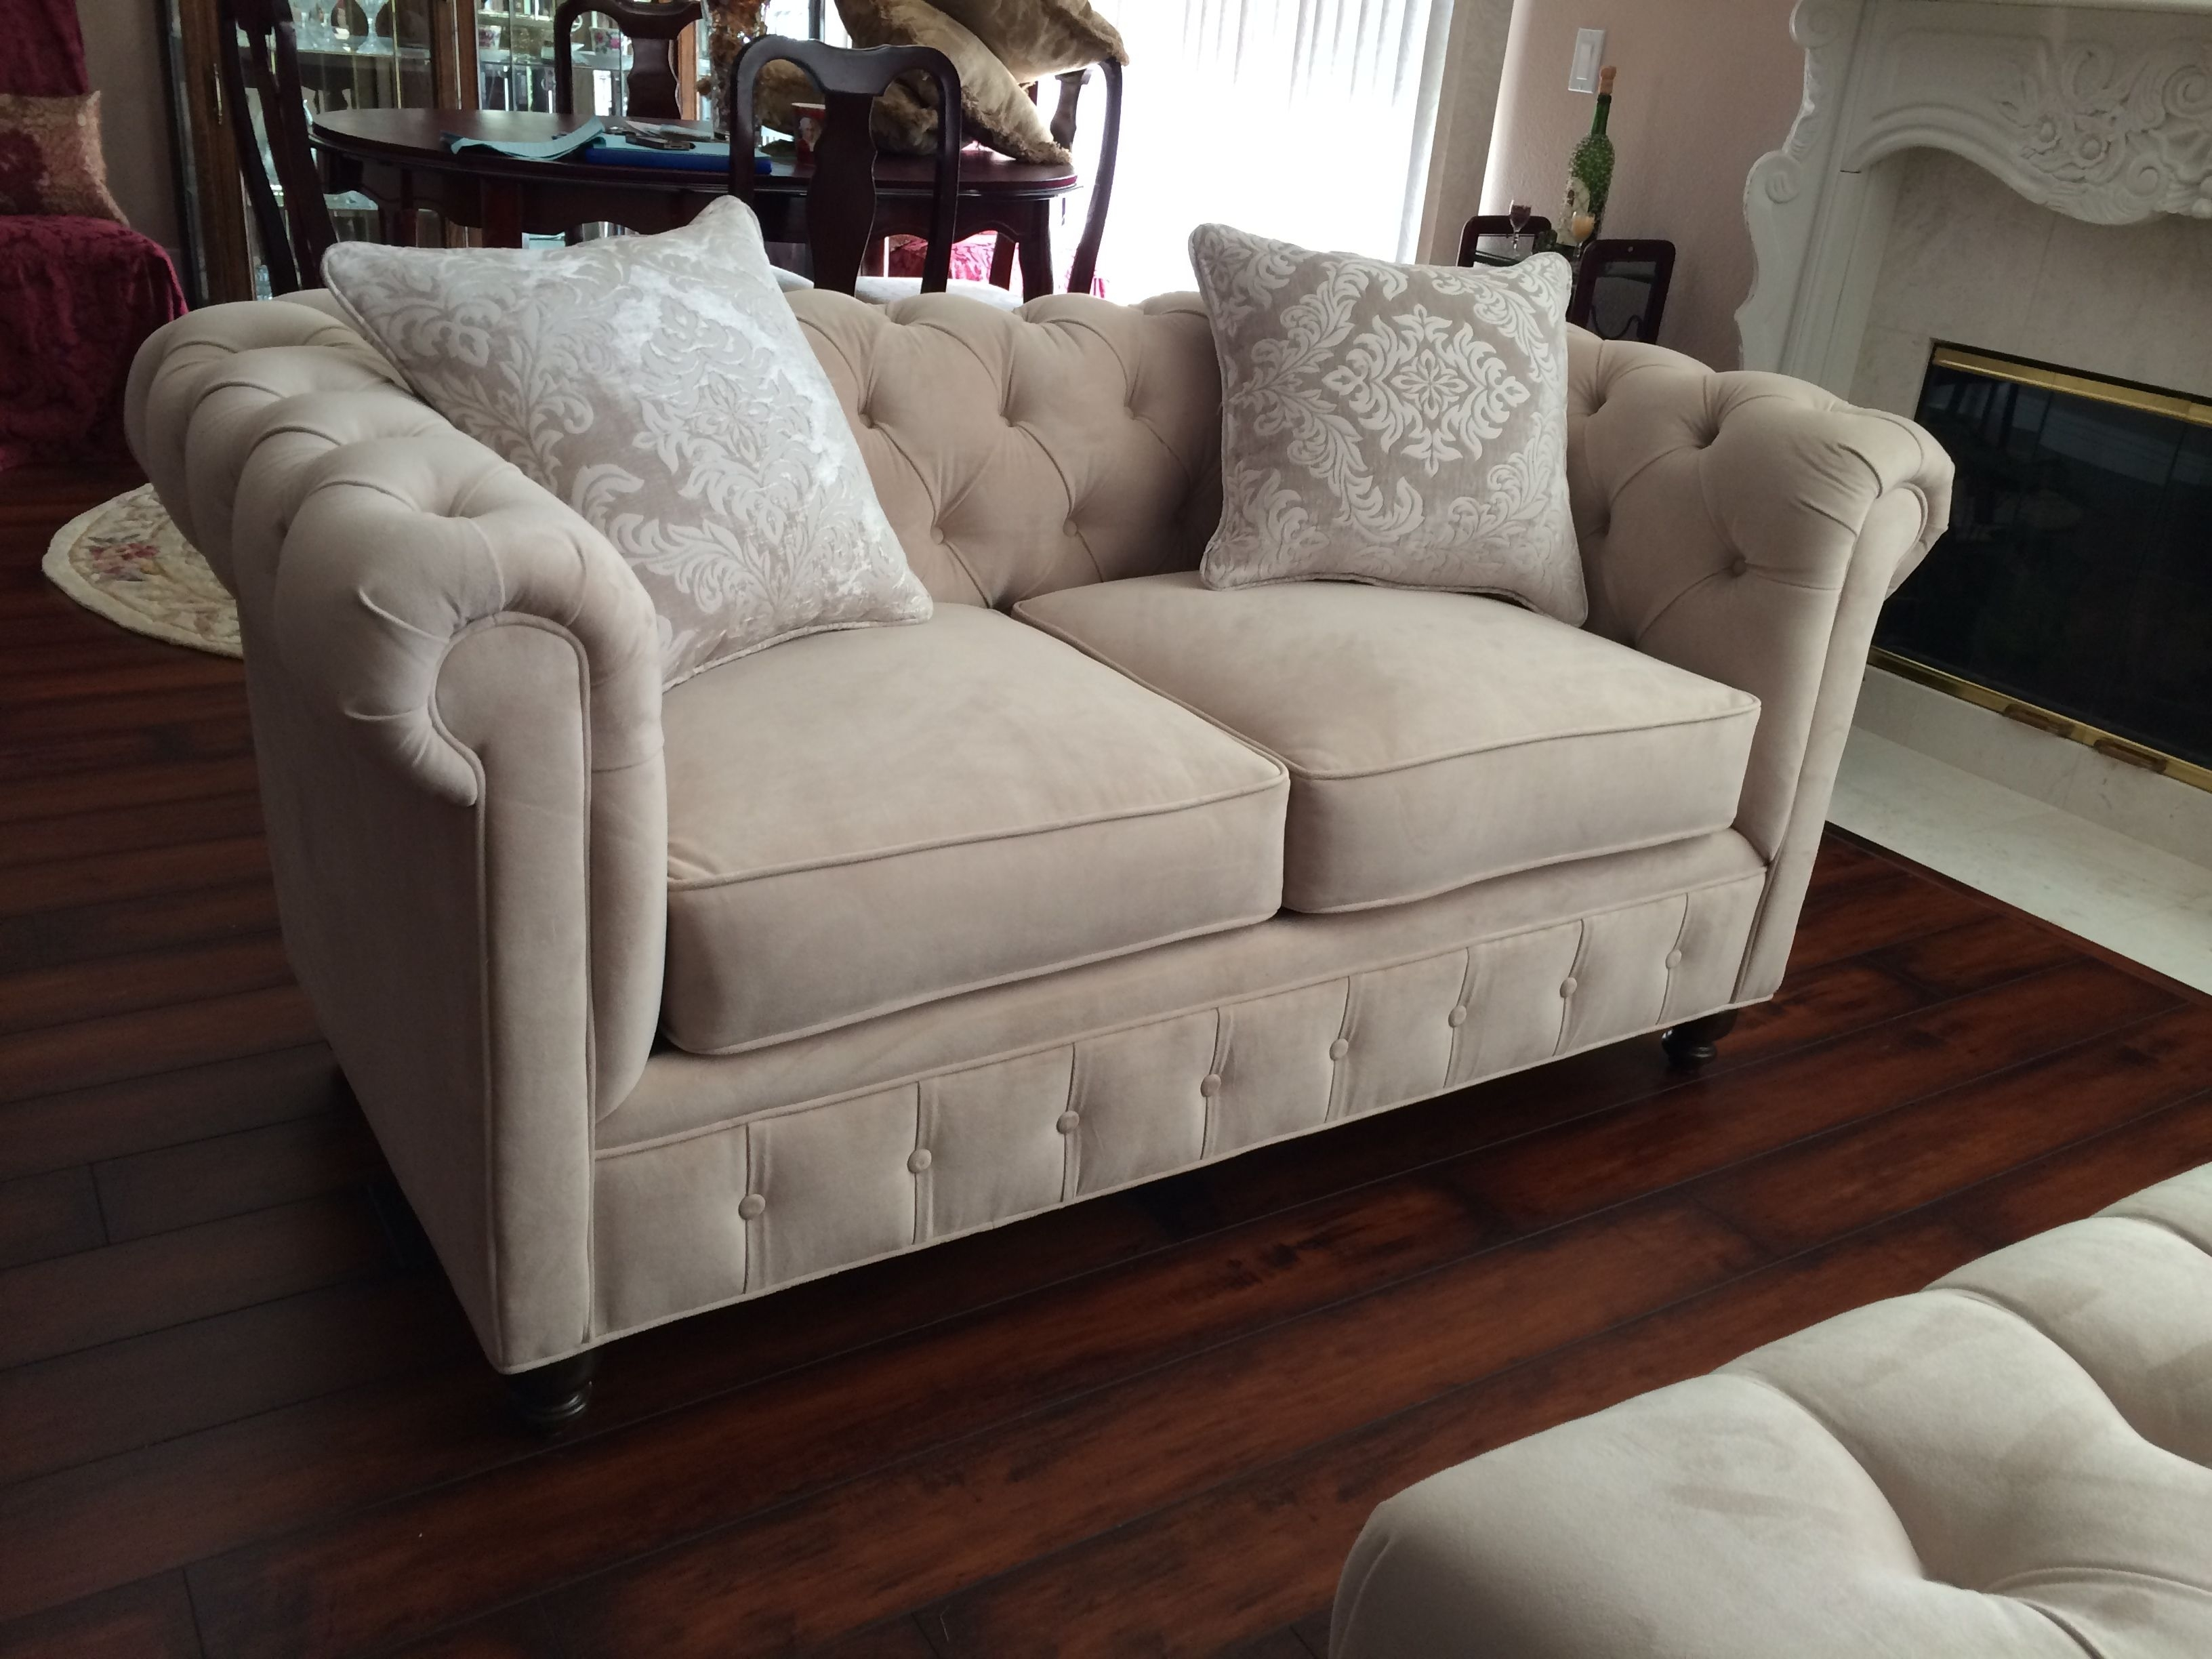 Pinmonarch Sofas – Your Custom Sofa & Custom Sectional Source With Houzz Sectional Sofas (Image 7 of 10)